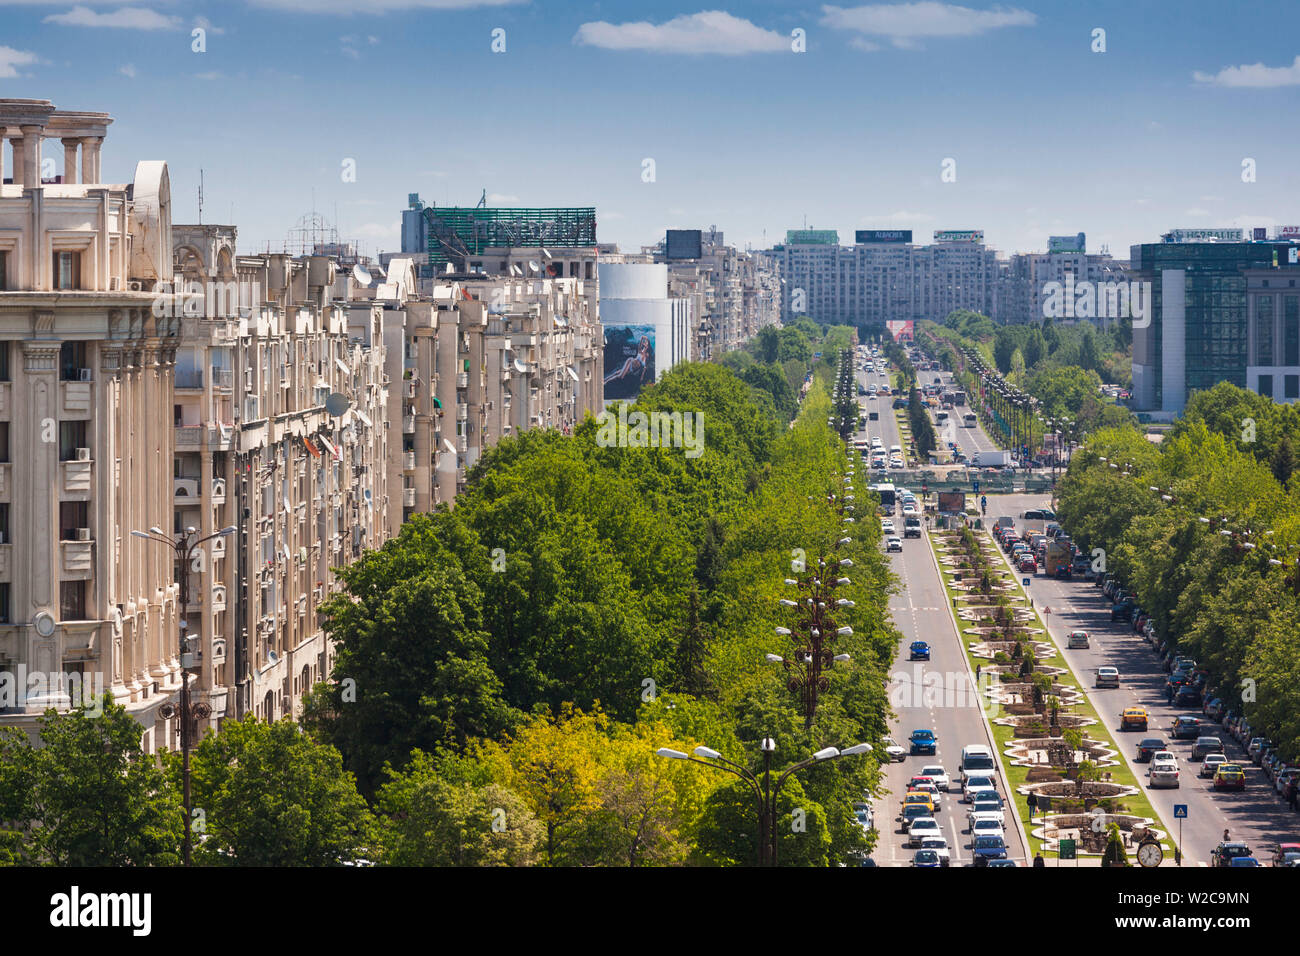 Romania, Bucharest, Palace of Parliament, world's second-largest building, view of Unirii Boulevard Stock Photo